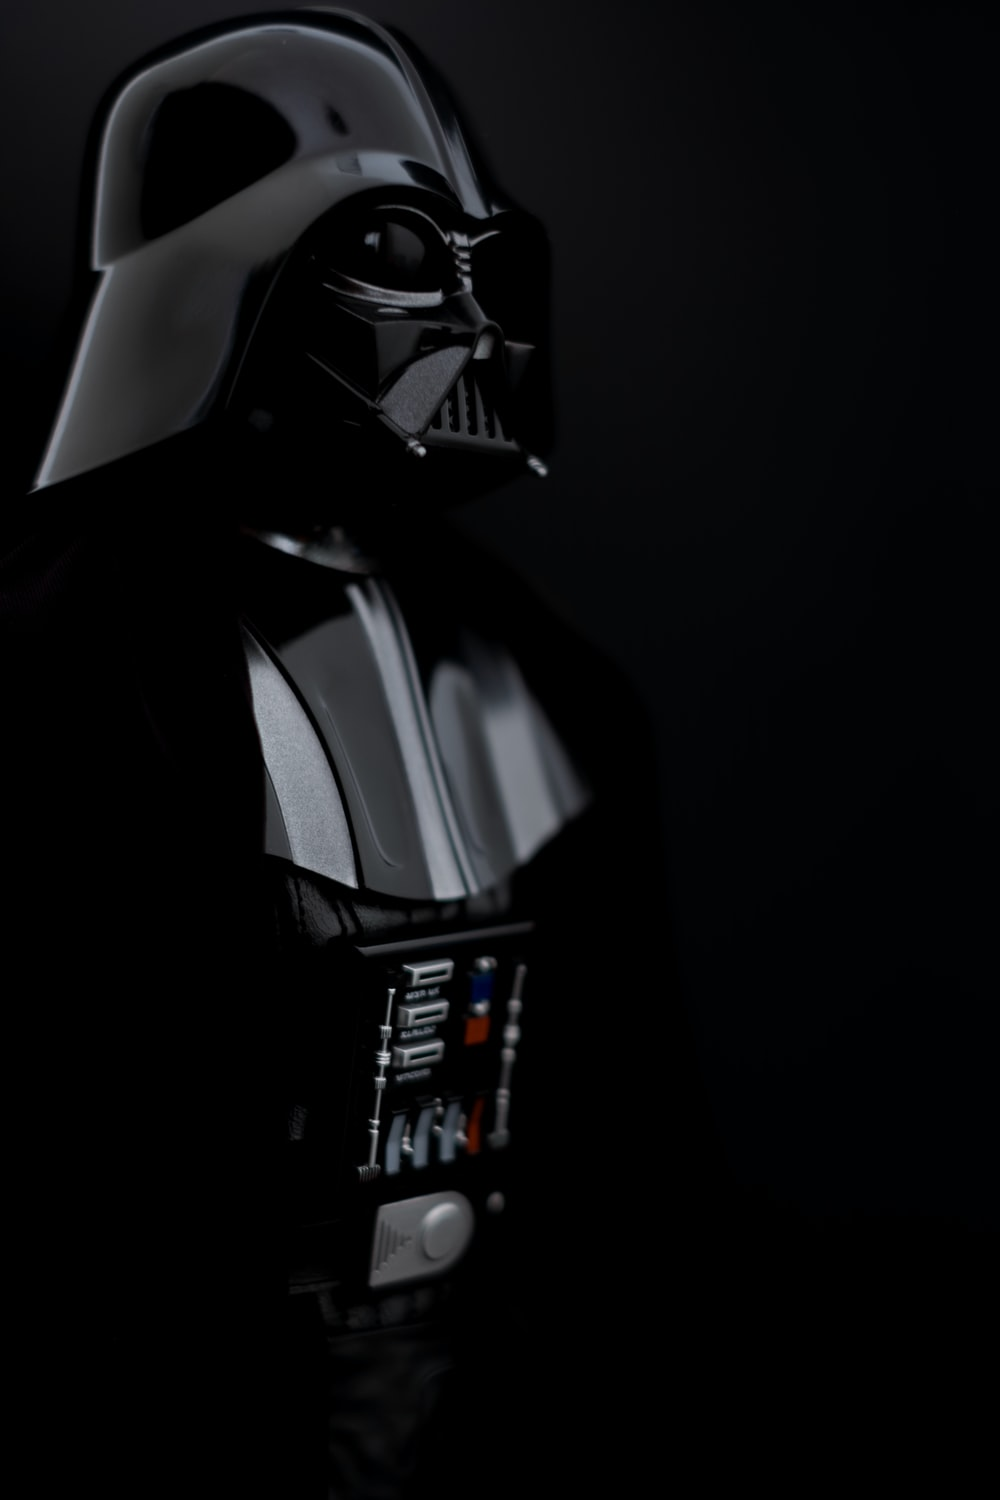 Star Wars Darth Vader Wallpaper Photo Free México Image On